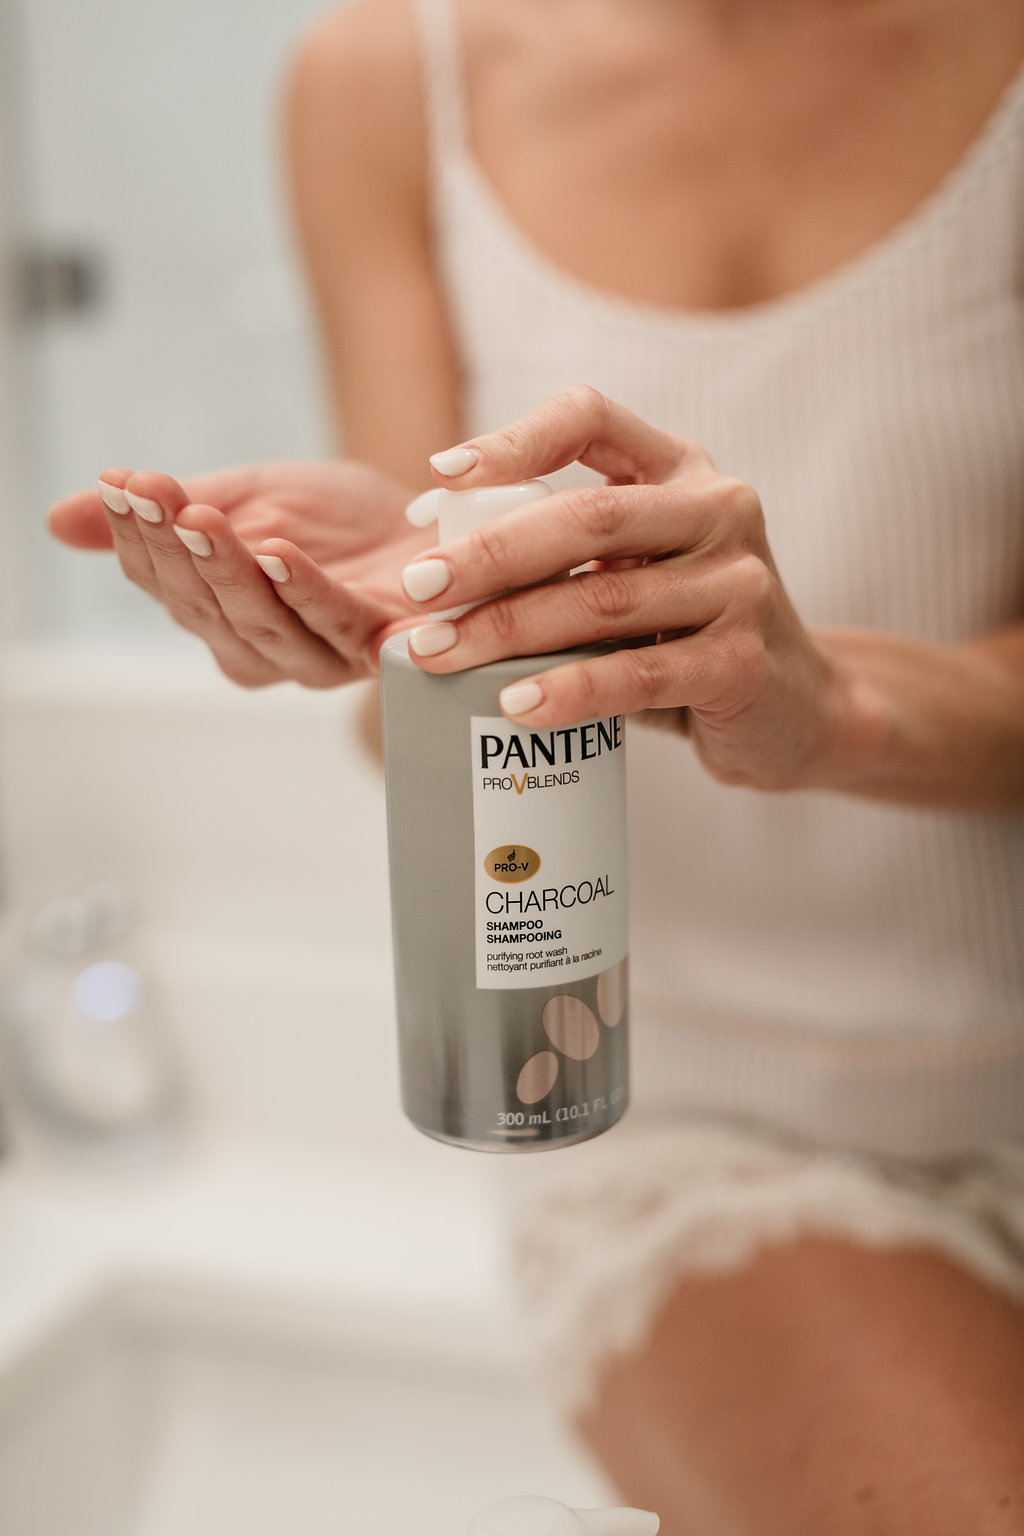 Pantene Charcoal Collection - One Small Blonde